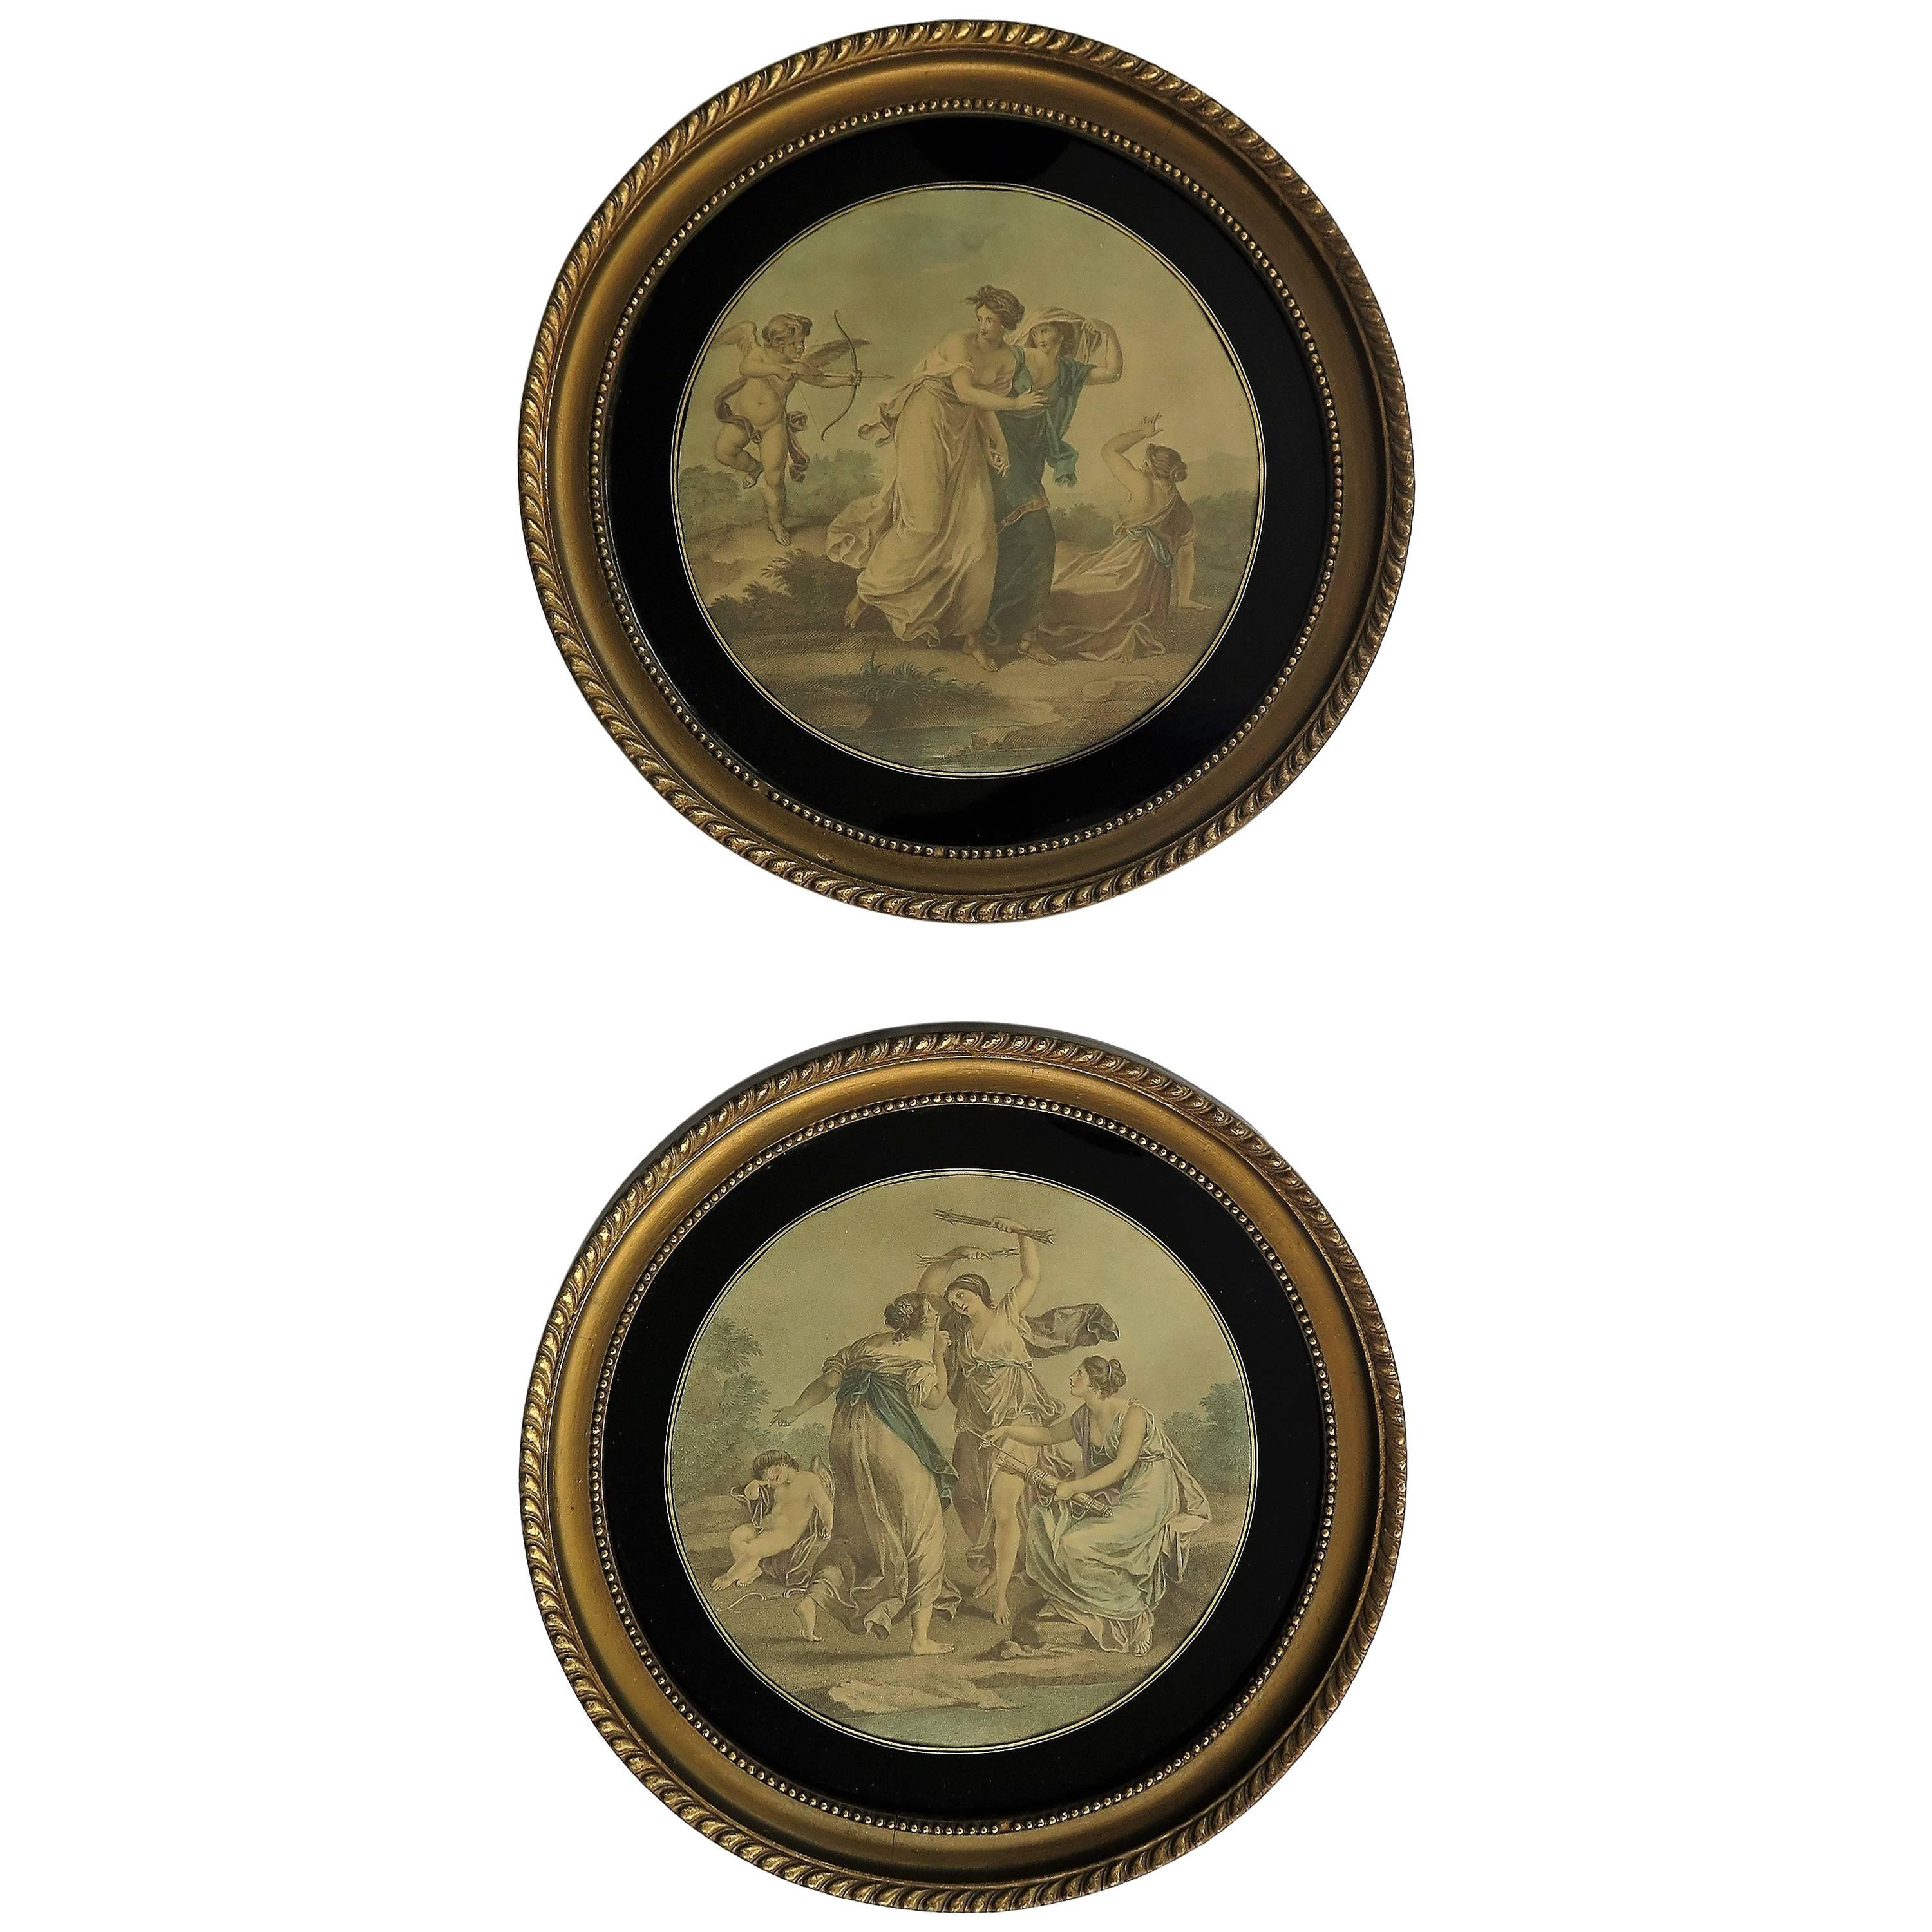 Pair Framed Colored Engravings or Prints after Angelica Kauffmann, London Label